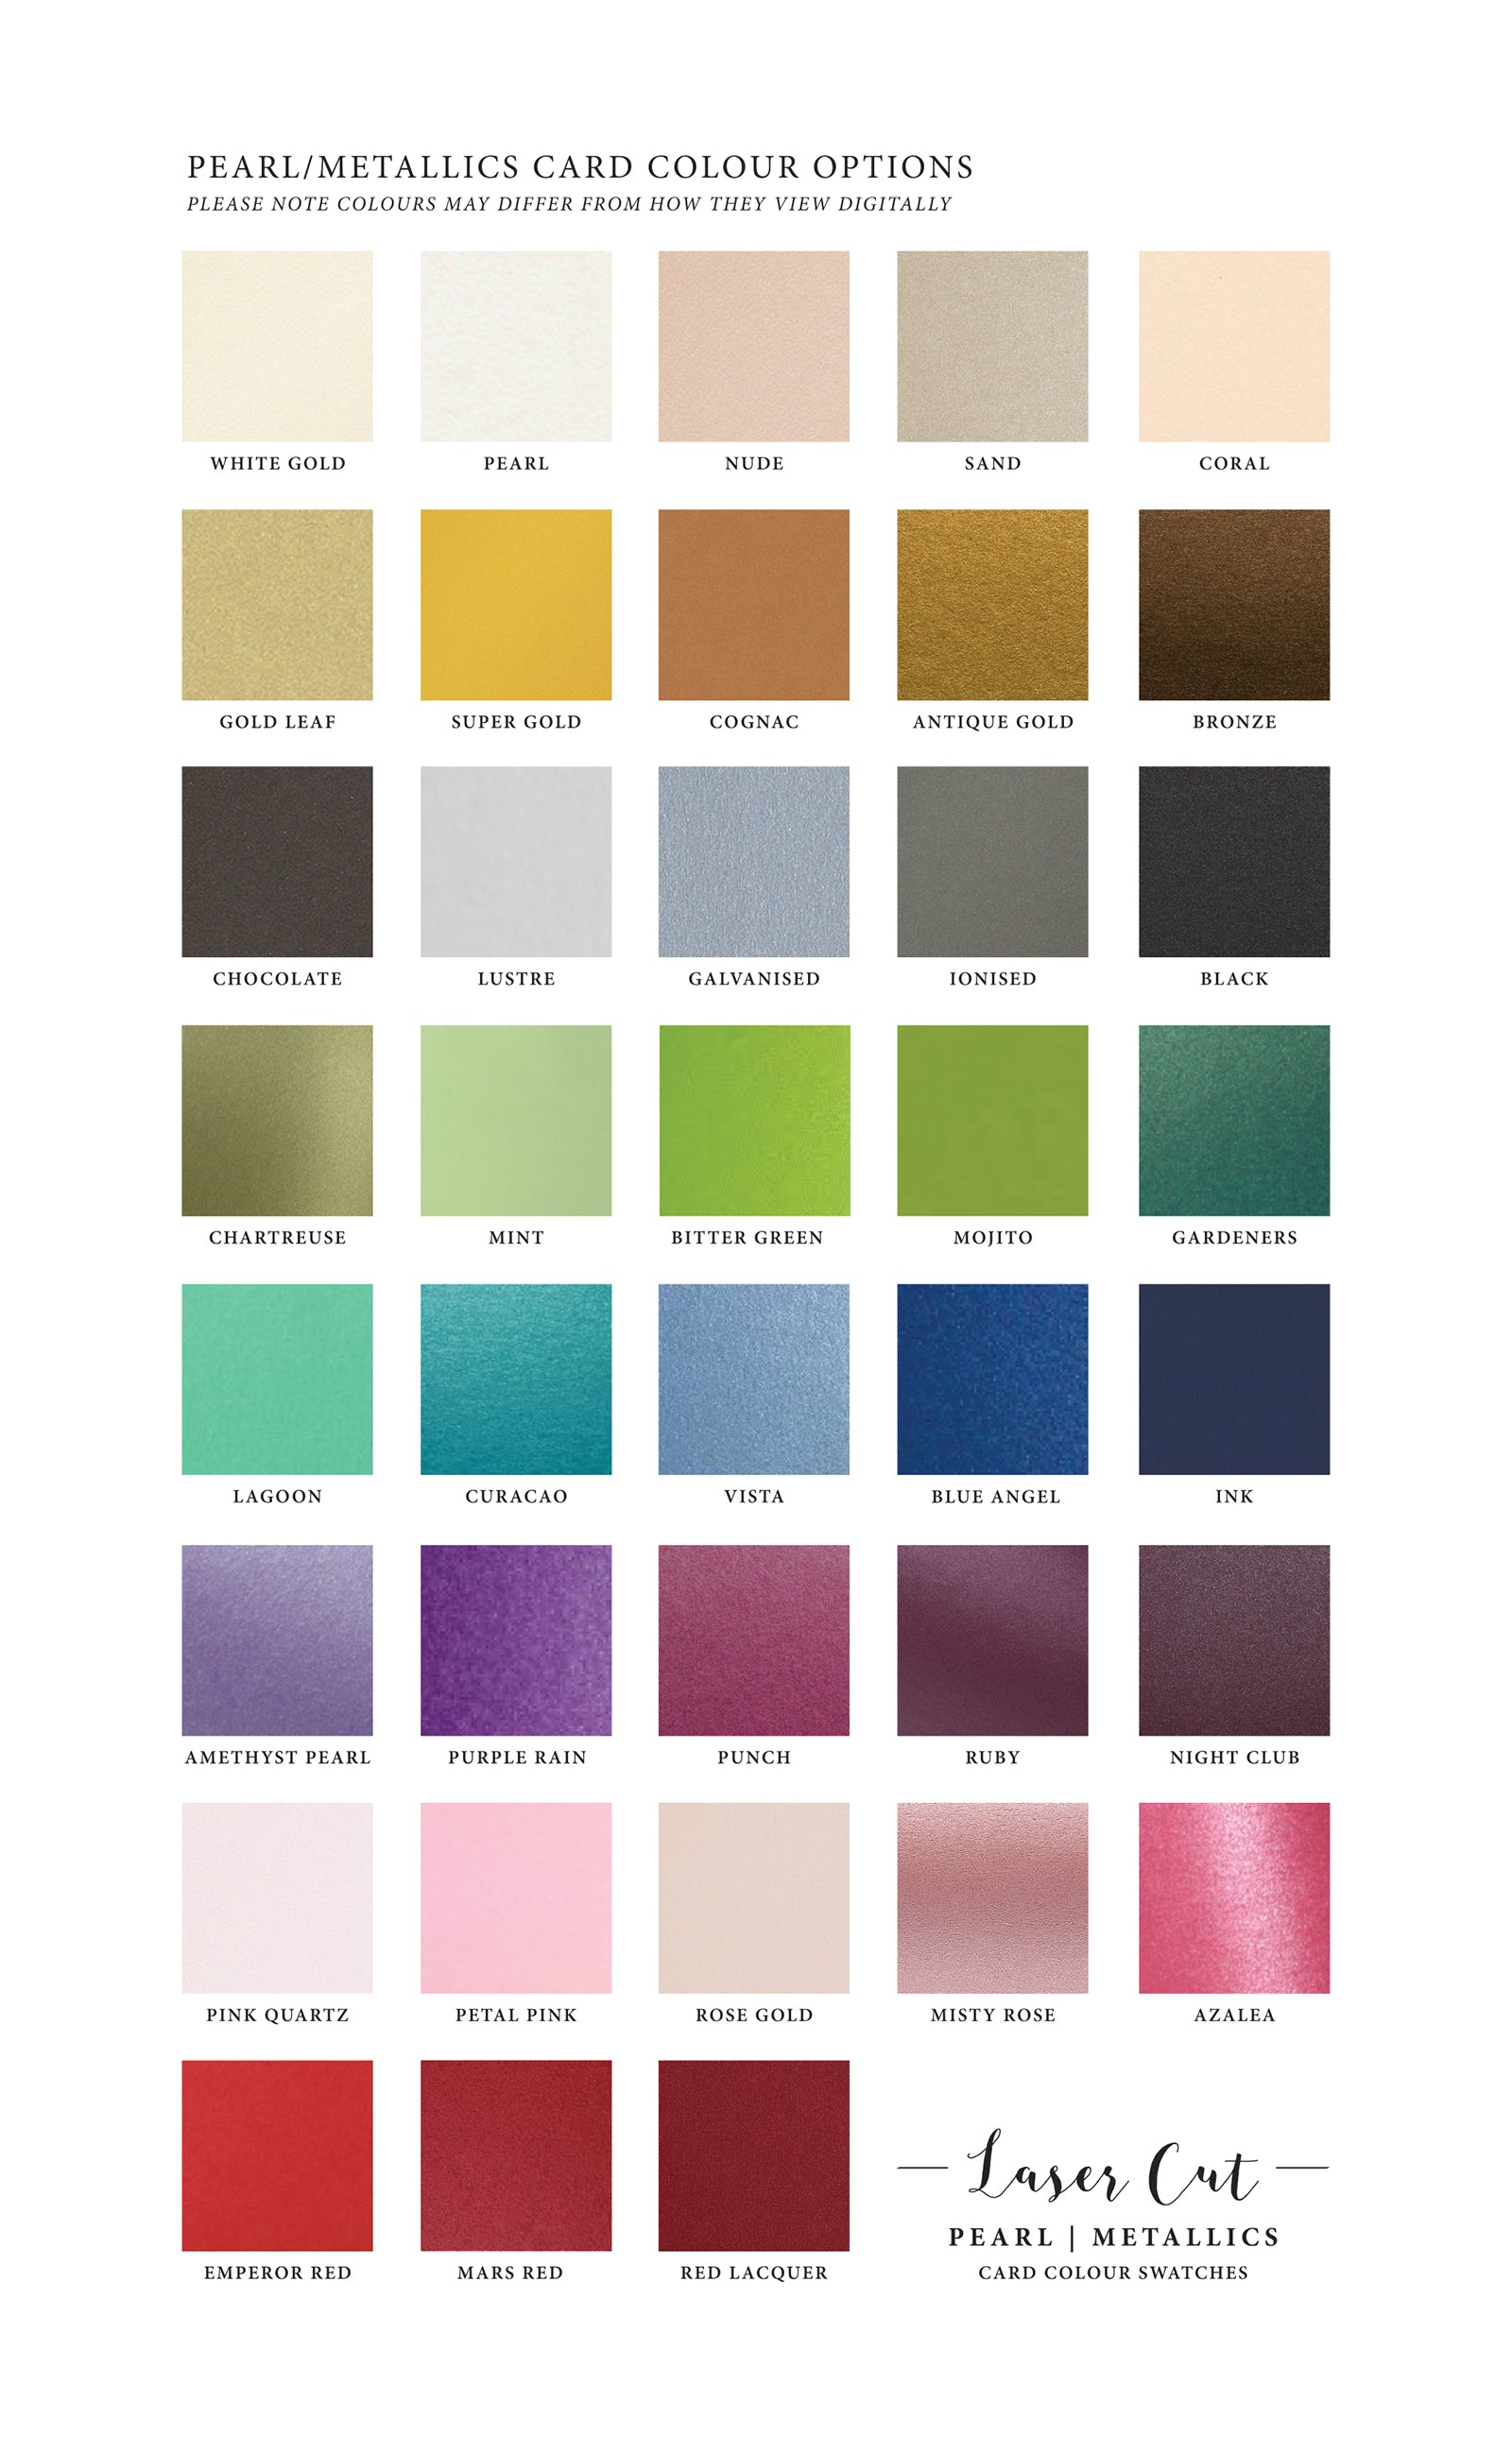 Pearl/Metallic Card Colours